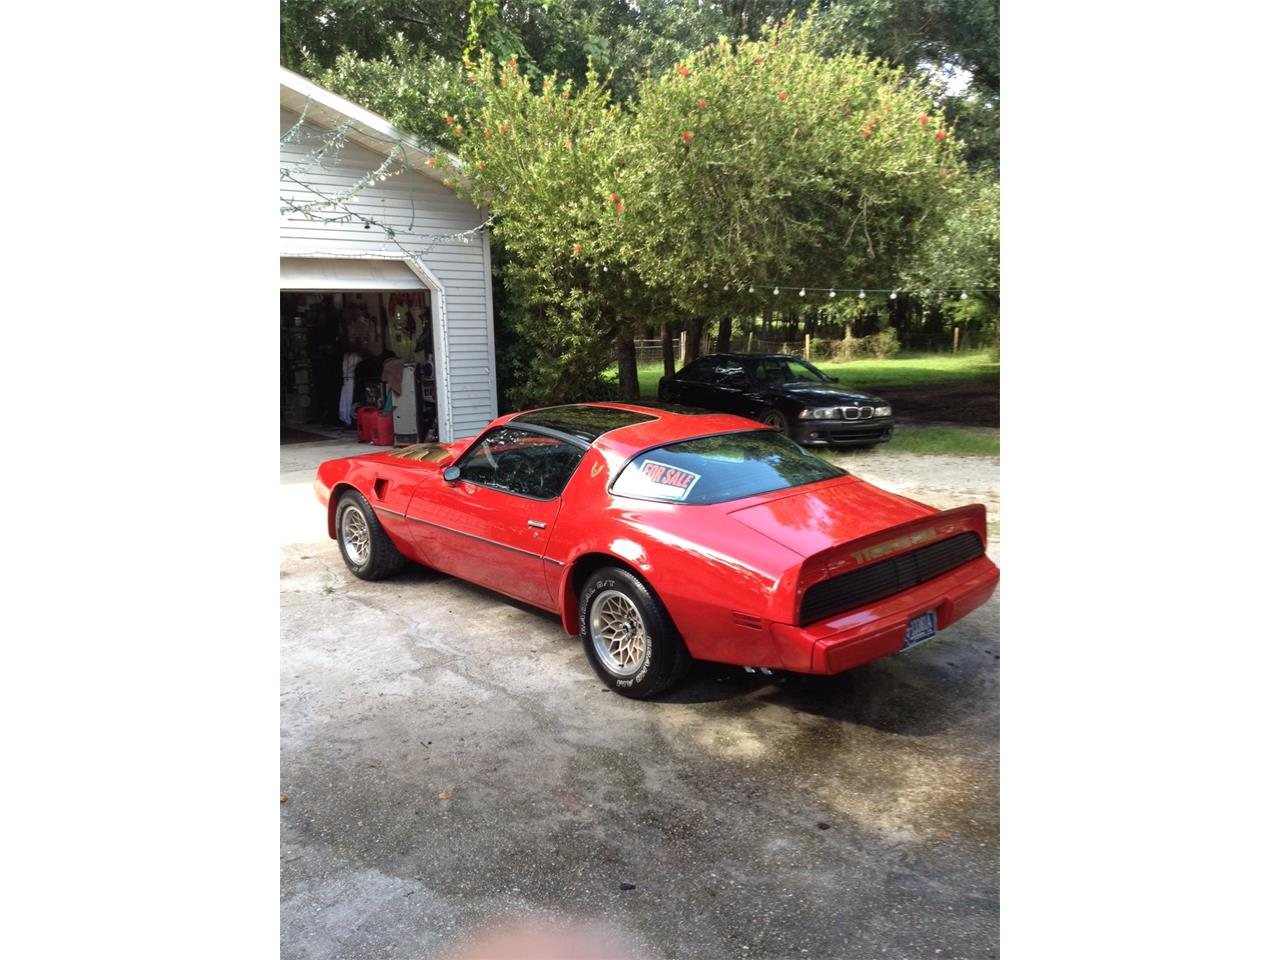 Large Picture of '79 Firebird Trans Am located in Sarasota Florida - $29,900.00 Offered by a Private Seller - F2WL